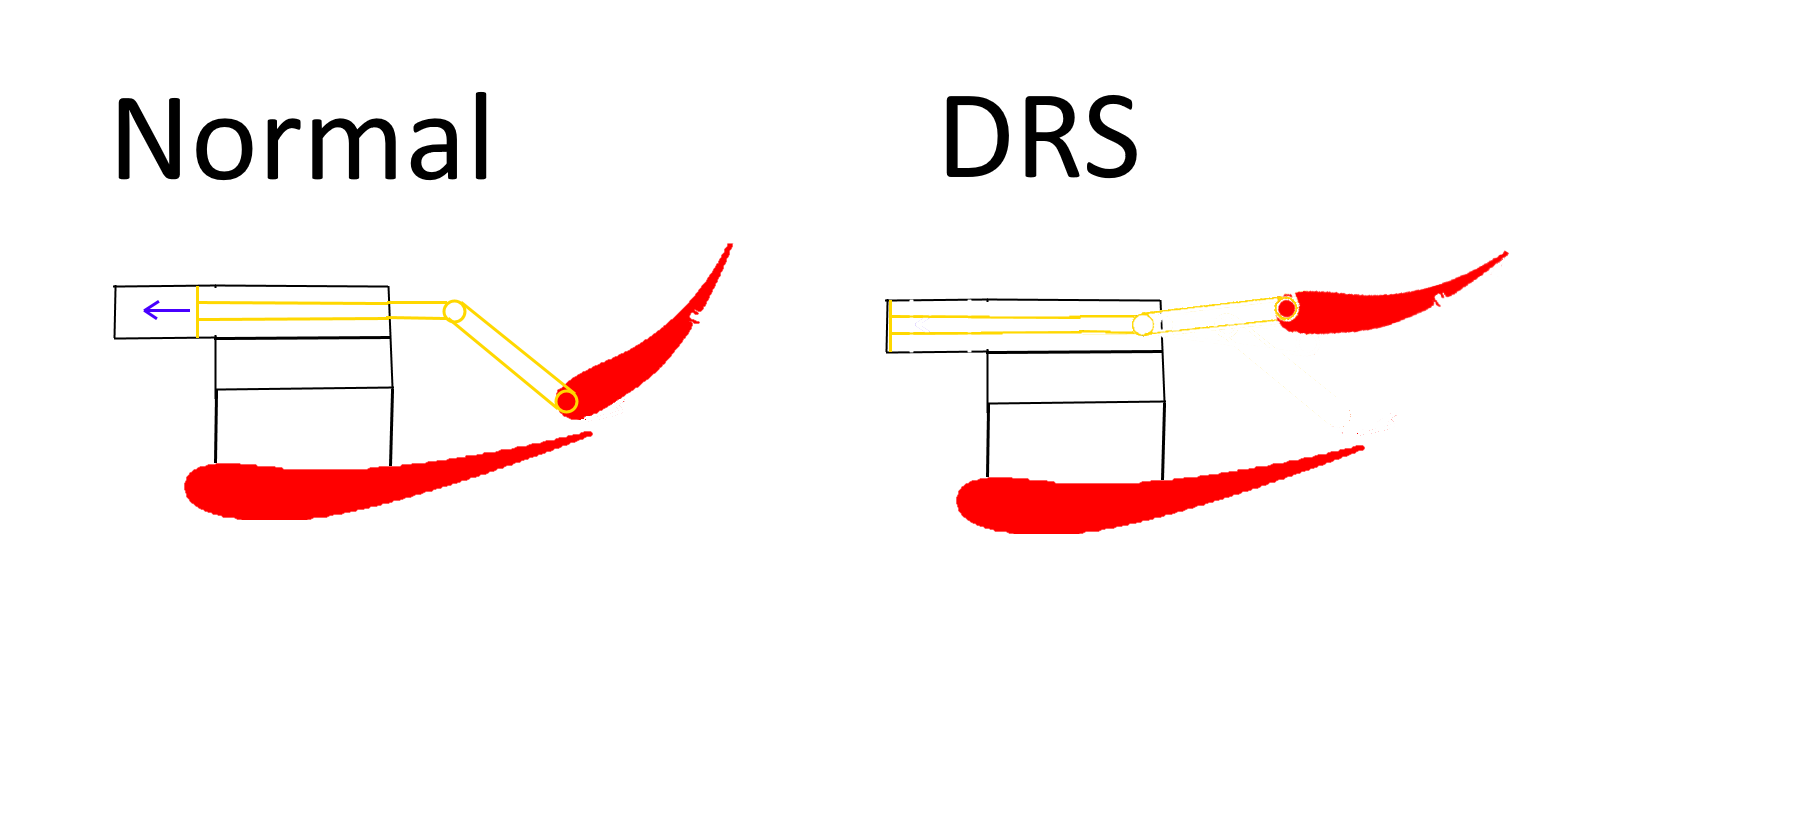 Top wing DRS design.  Top wing is moved to increase or decrease drag.